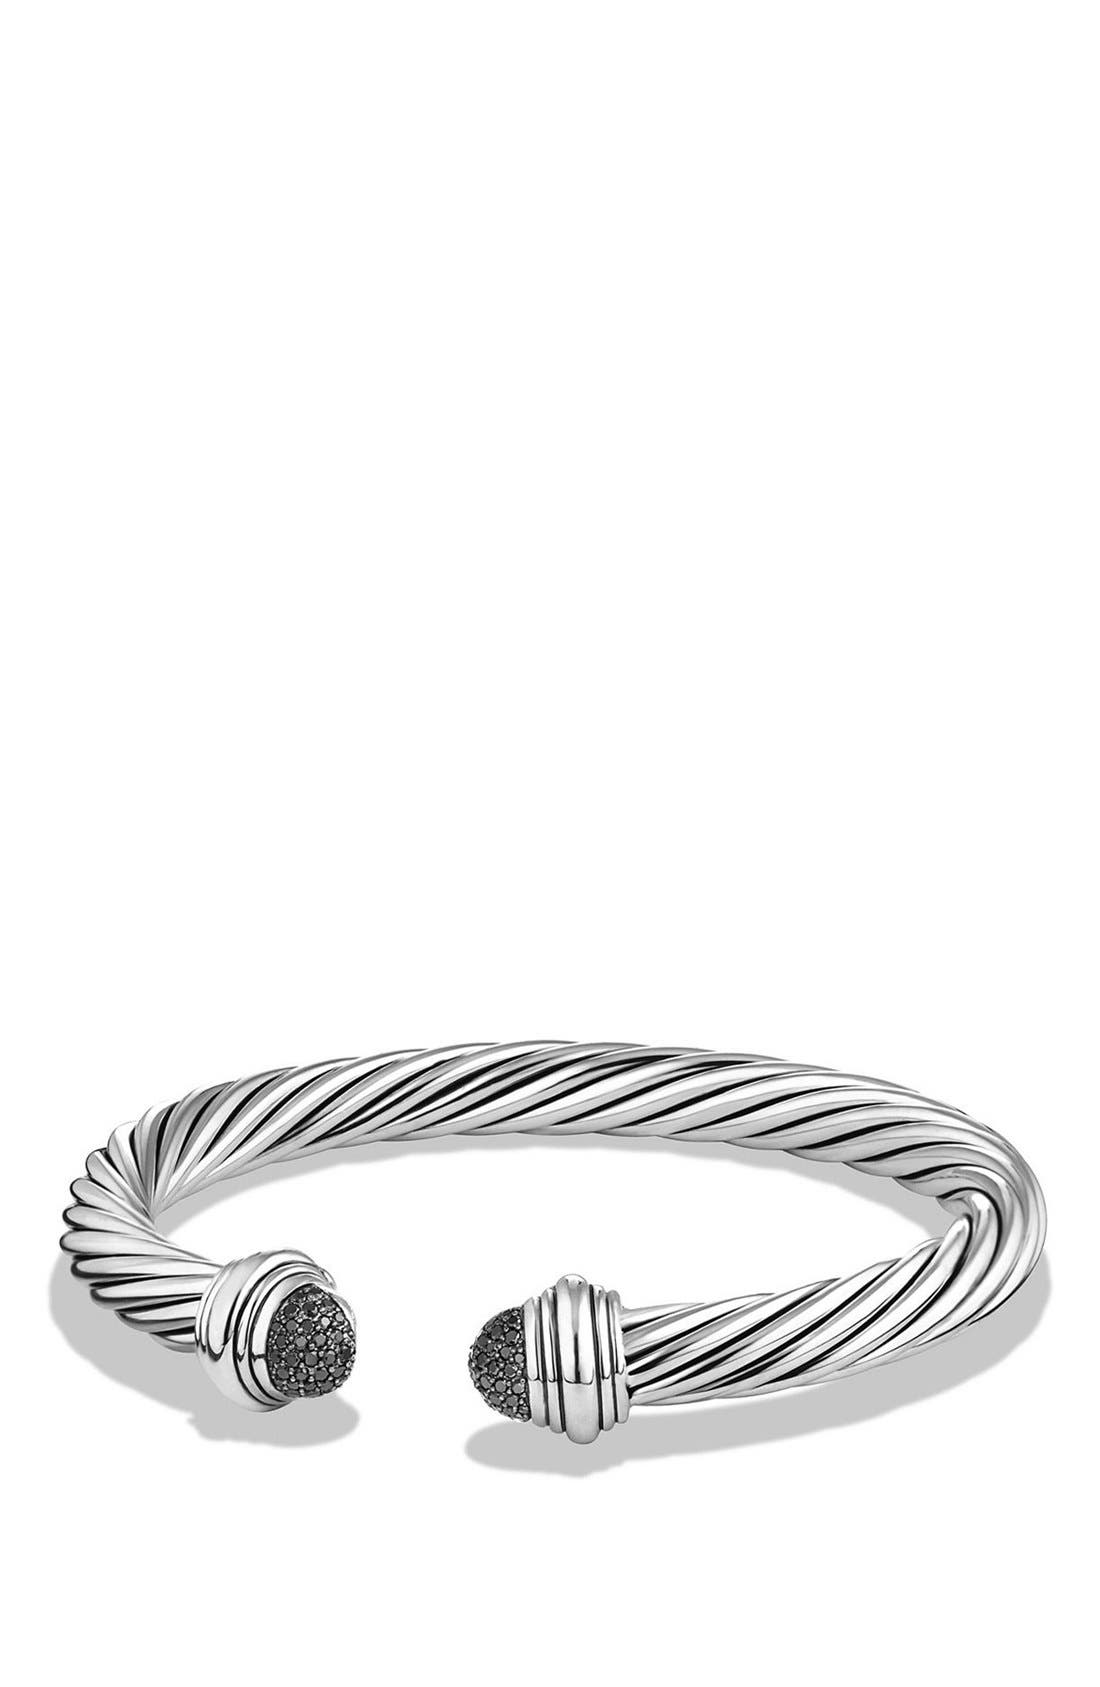 David Yurman 'Cable Classics' Bracelet with Black Diamonds